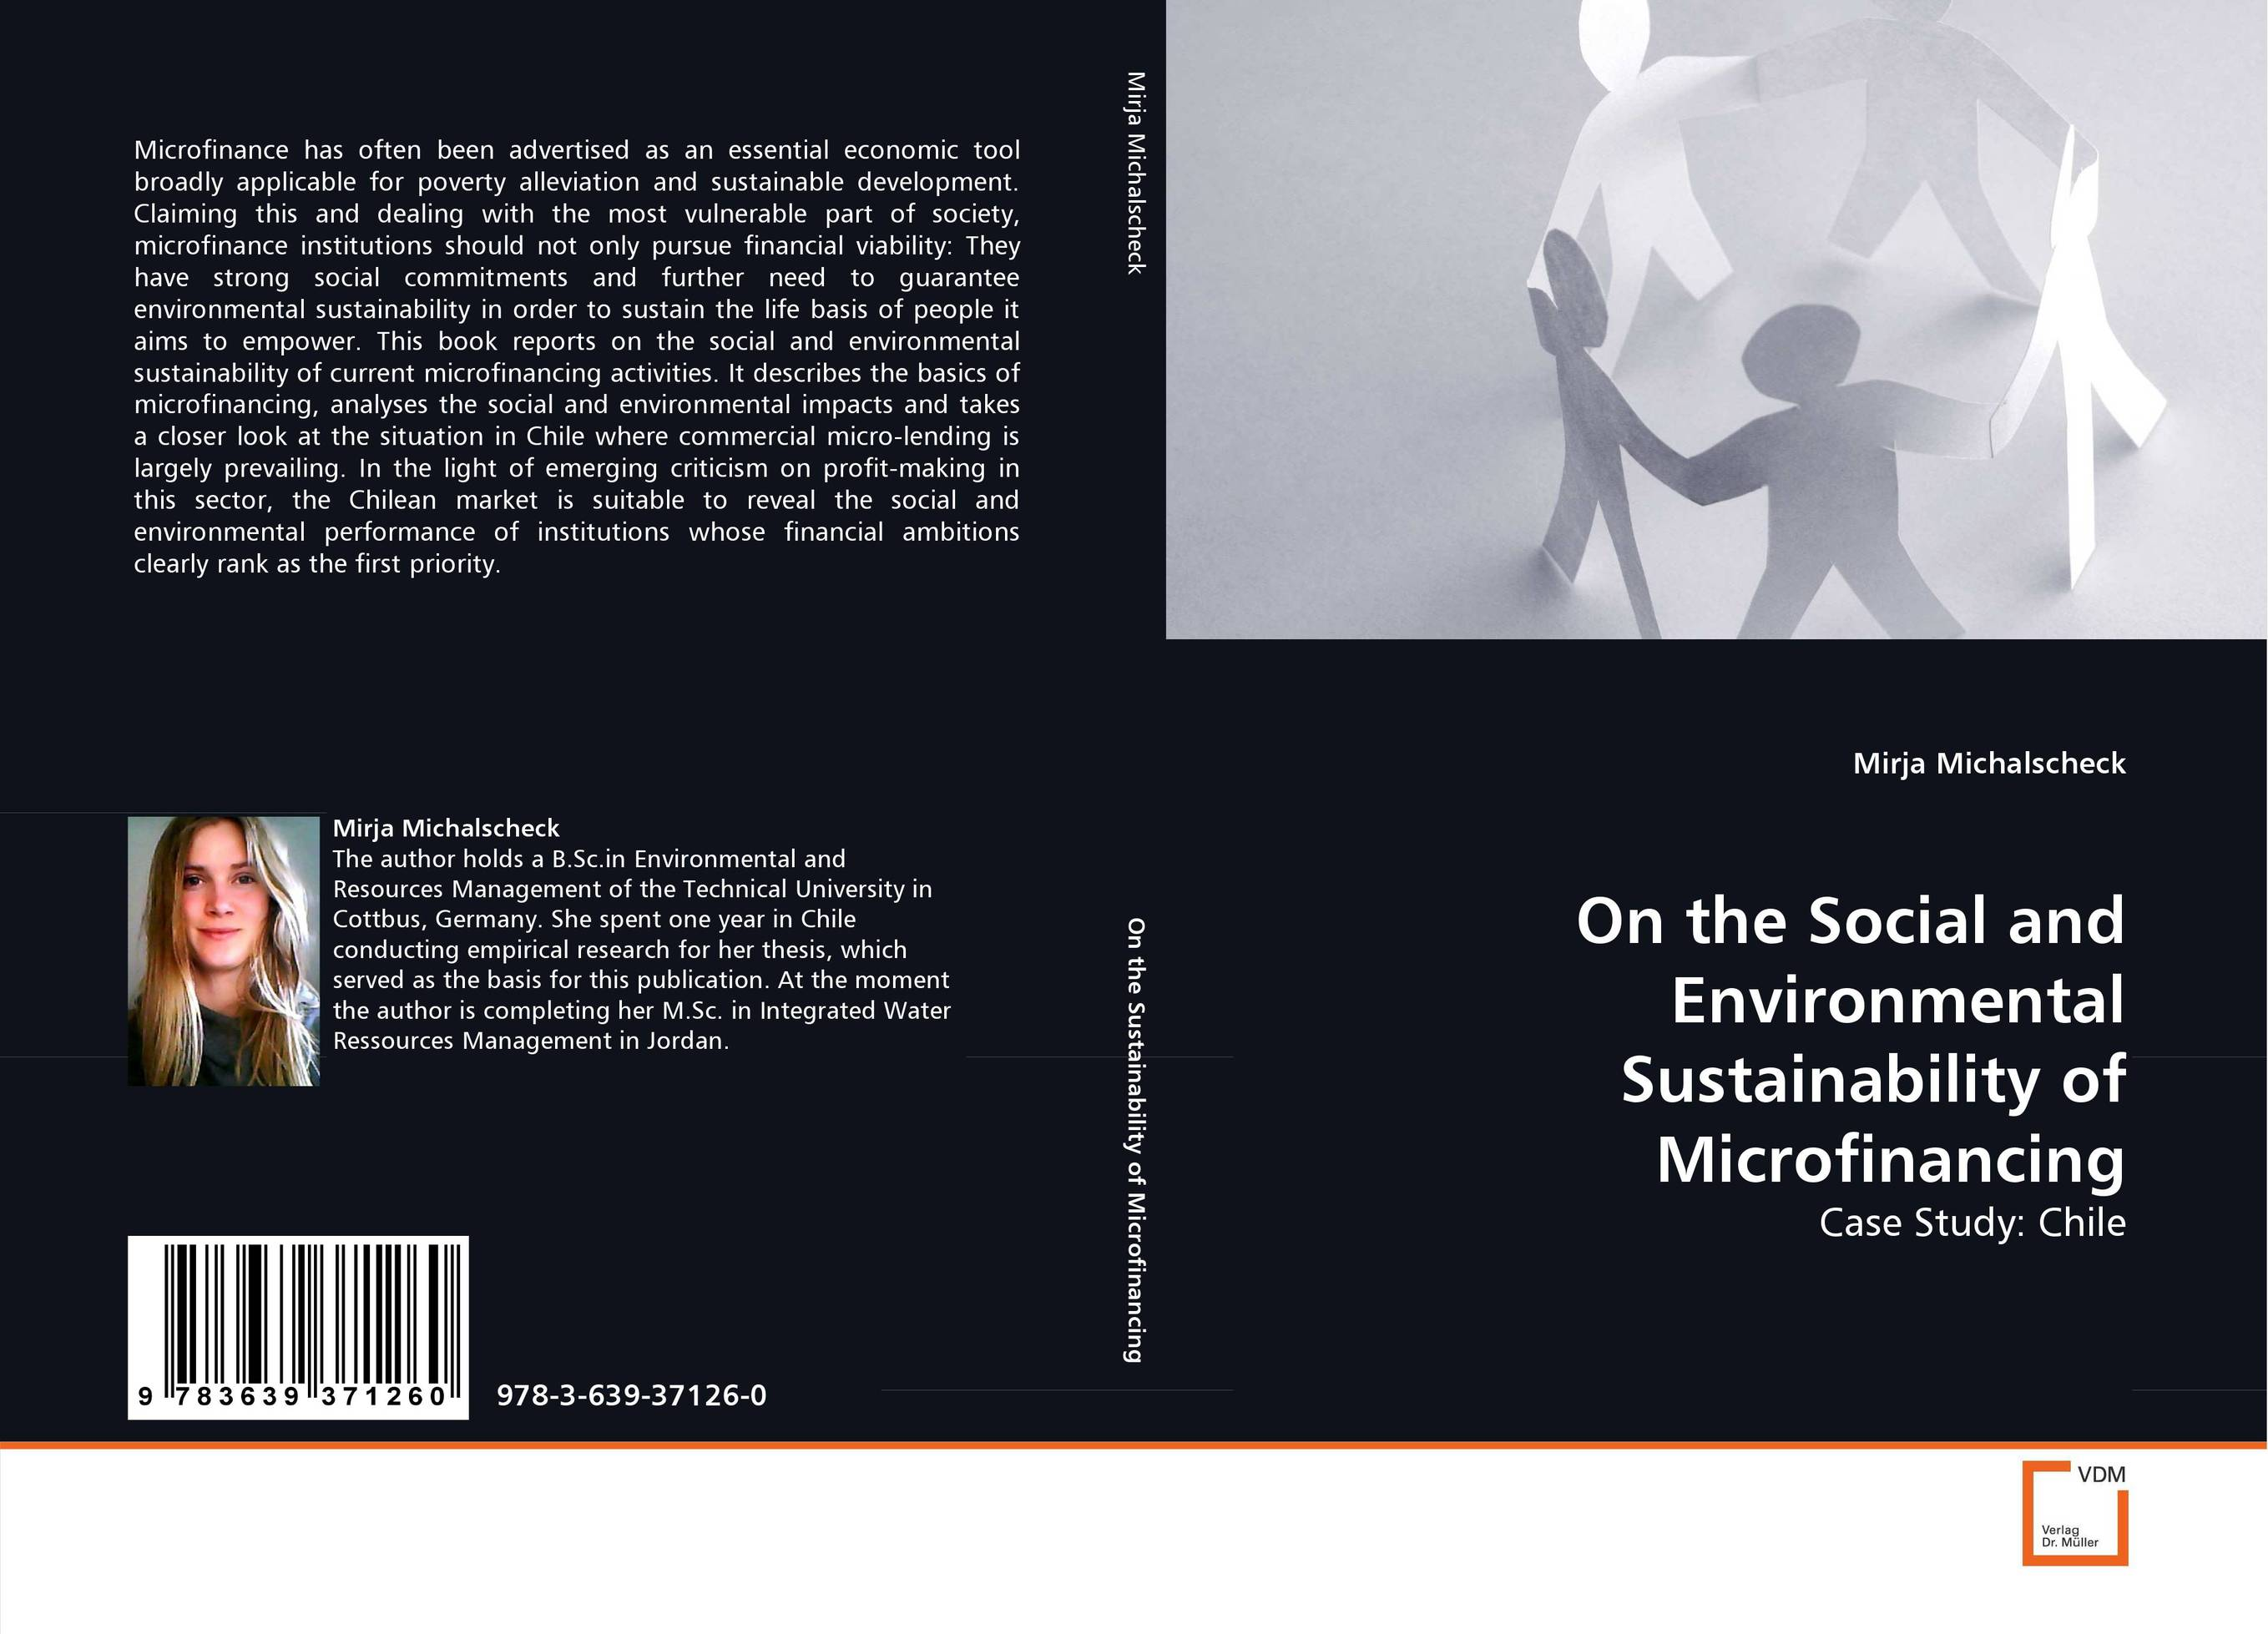 On the Social and Environmental Sustainability of Microfinancing sustainability and the sovereign bond market